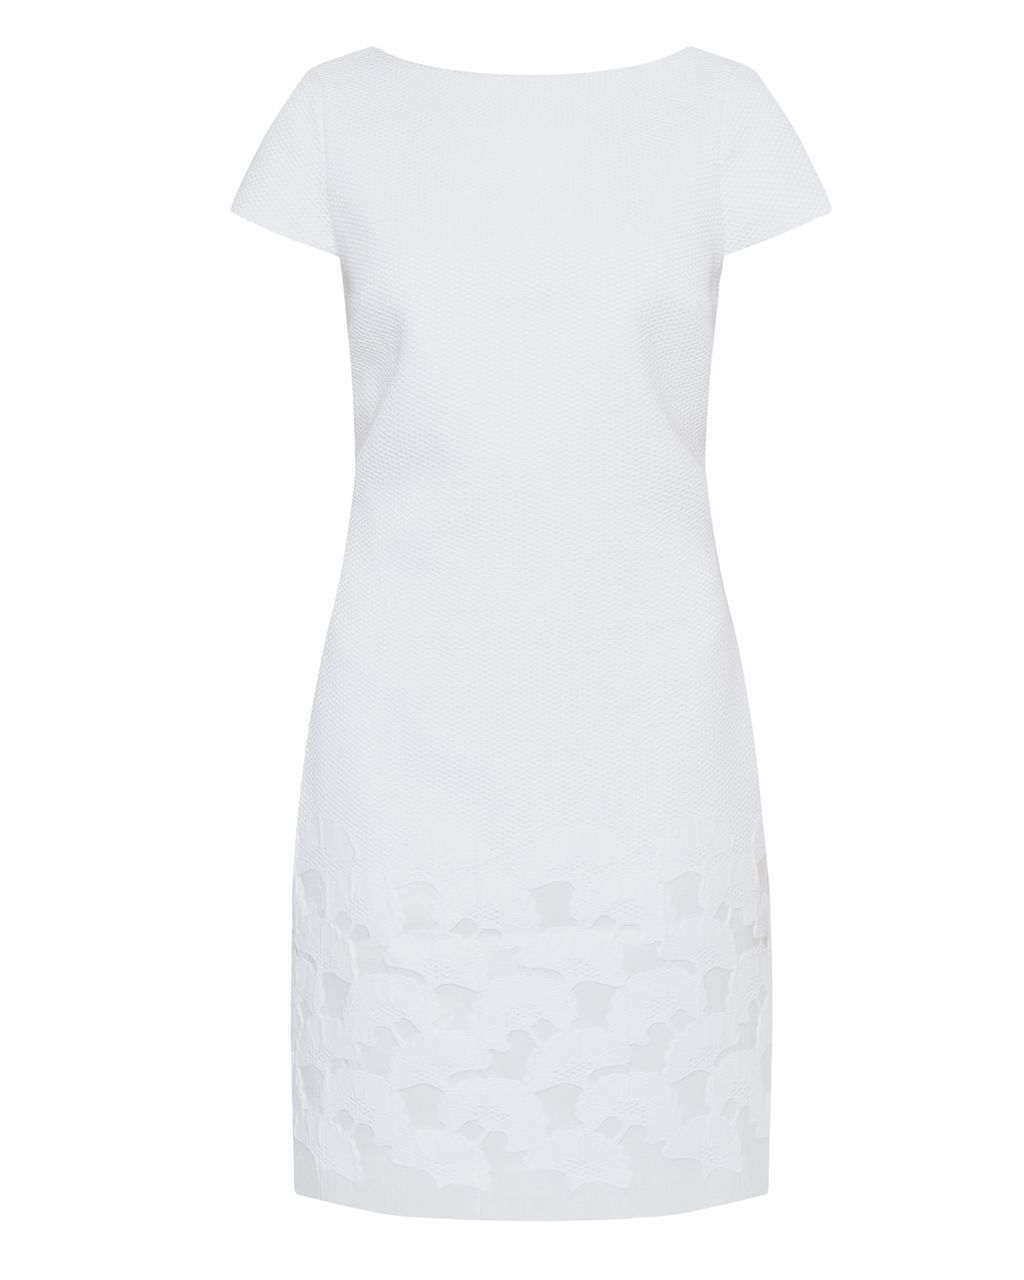 Juliene Jacquard Midi Dress, Winter White - style: shift; fit: tailored/fitted; pattern: plain; predominant colour: white; occasions: evening; length: just above the knee; fibres: cotton - mix; neckline: crew; sleeve length: short sleeve; sleeve style: standard; pattern type: fabric; texture group: brocade/jacquard; season: s/s 2016